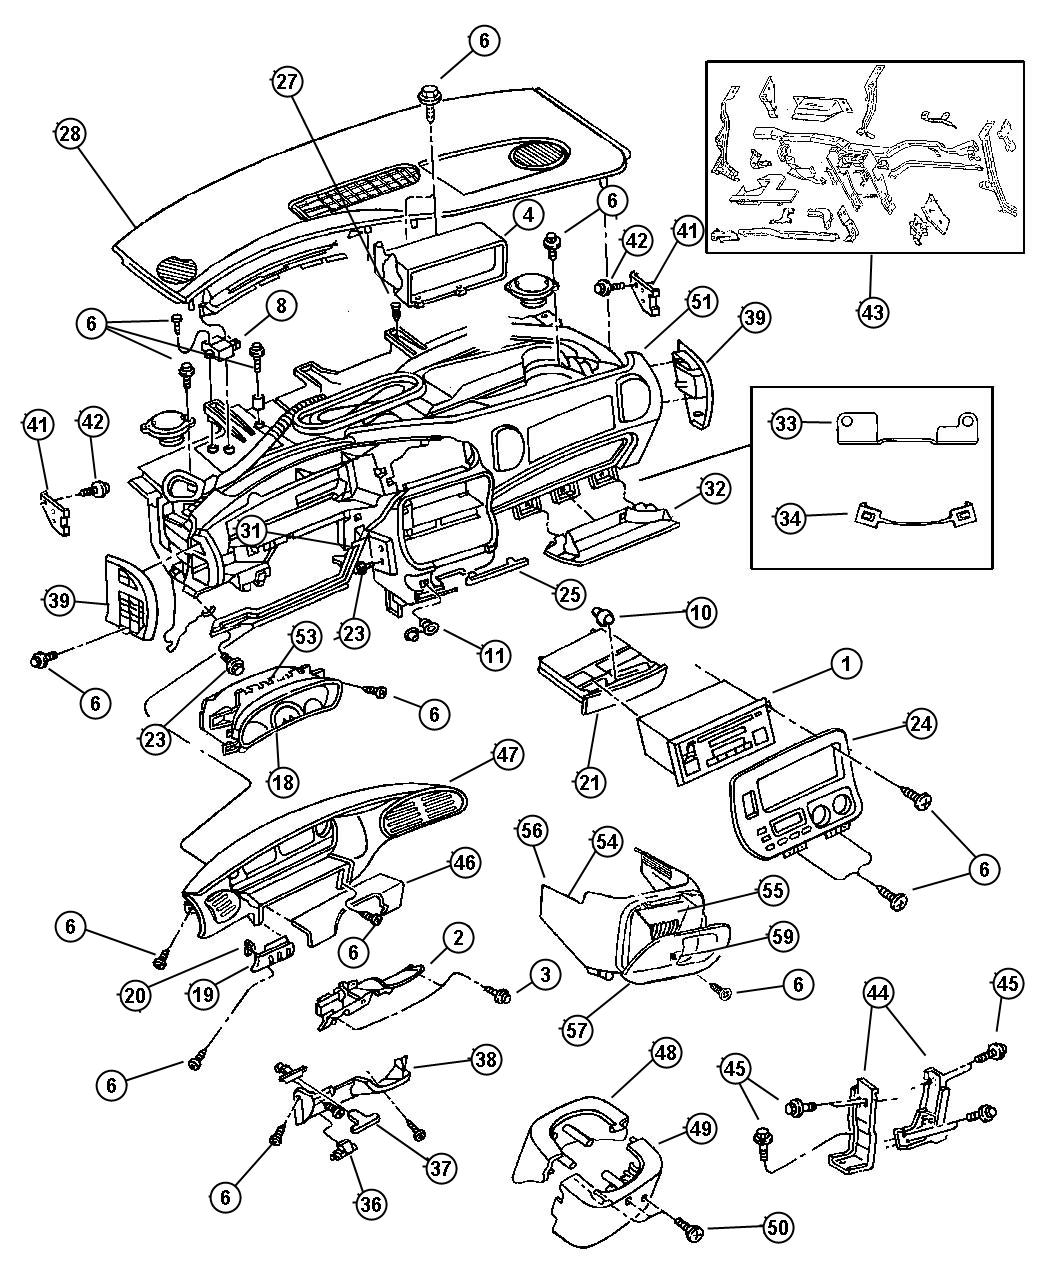 2002 Chrysler 300m Wiring Schematics Diagram 2007 Sebring Plymouth Voyager Engine Another Blog About U2022 2006 300 Fuse